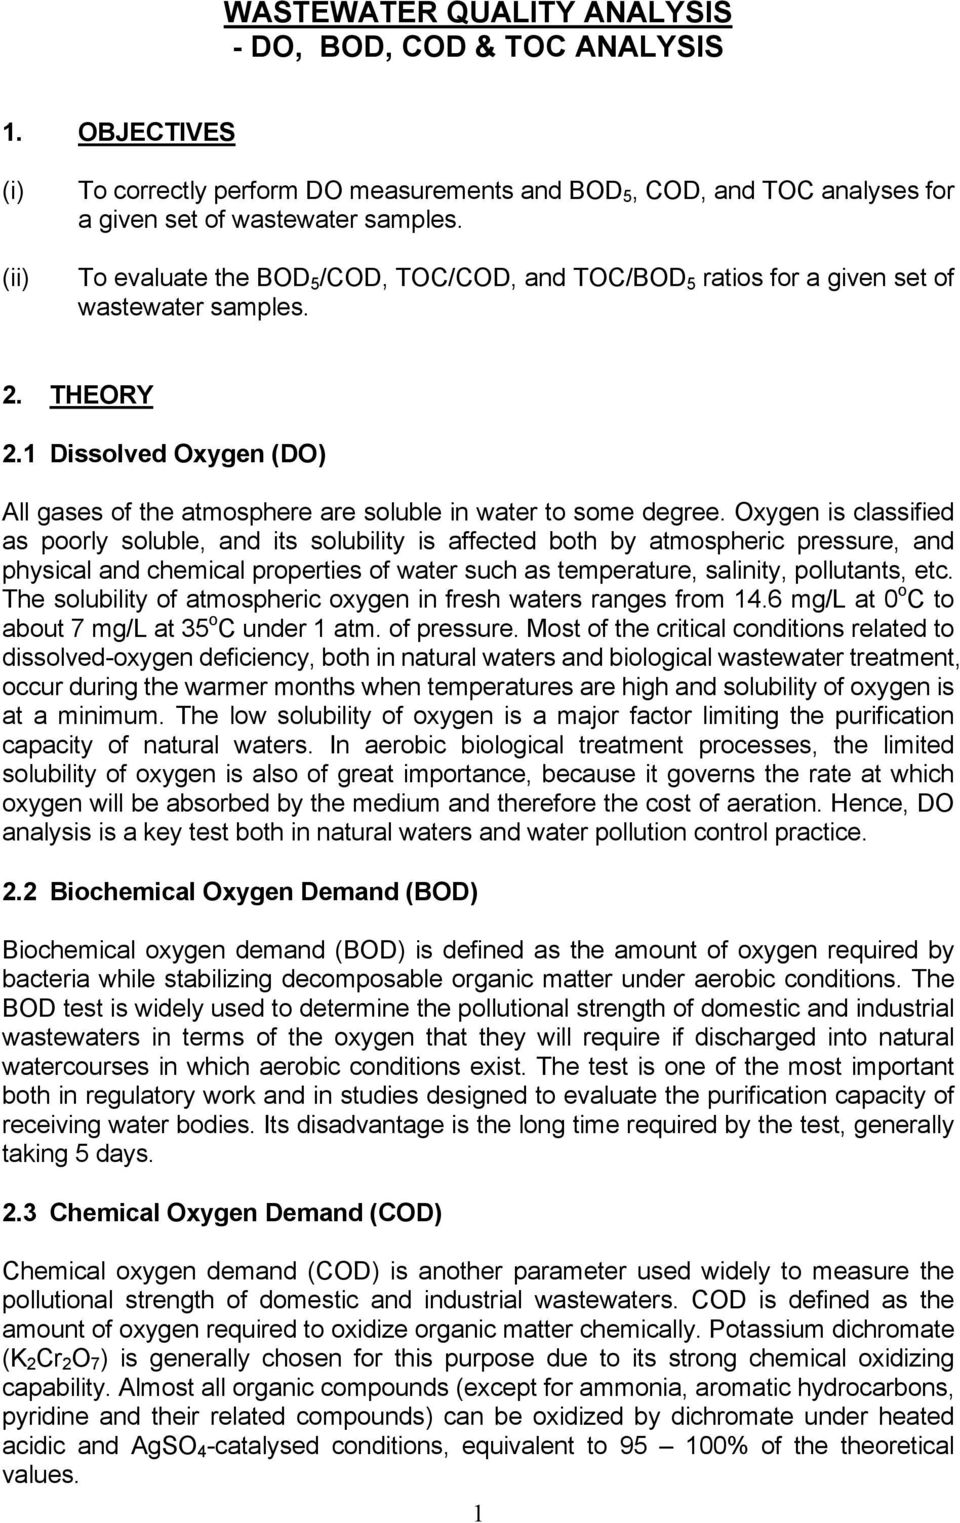 Oxygen is classified as poorly soluble, and its solubility is affected both by atmospheric pressure, and physical and chemical properties of water such as temperature, salinity, pollutants, etc.